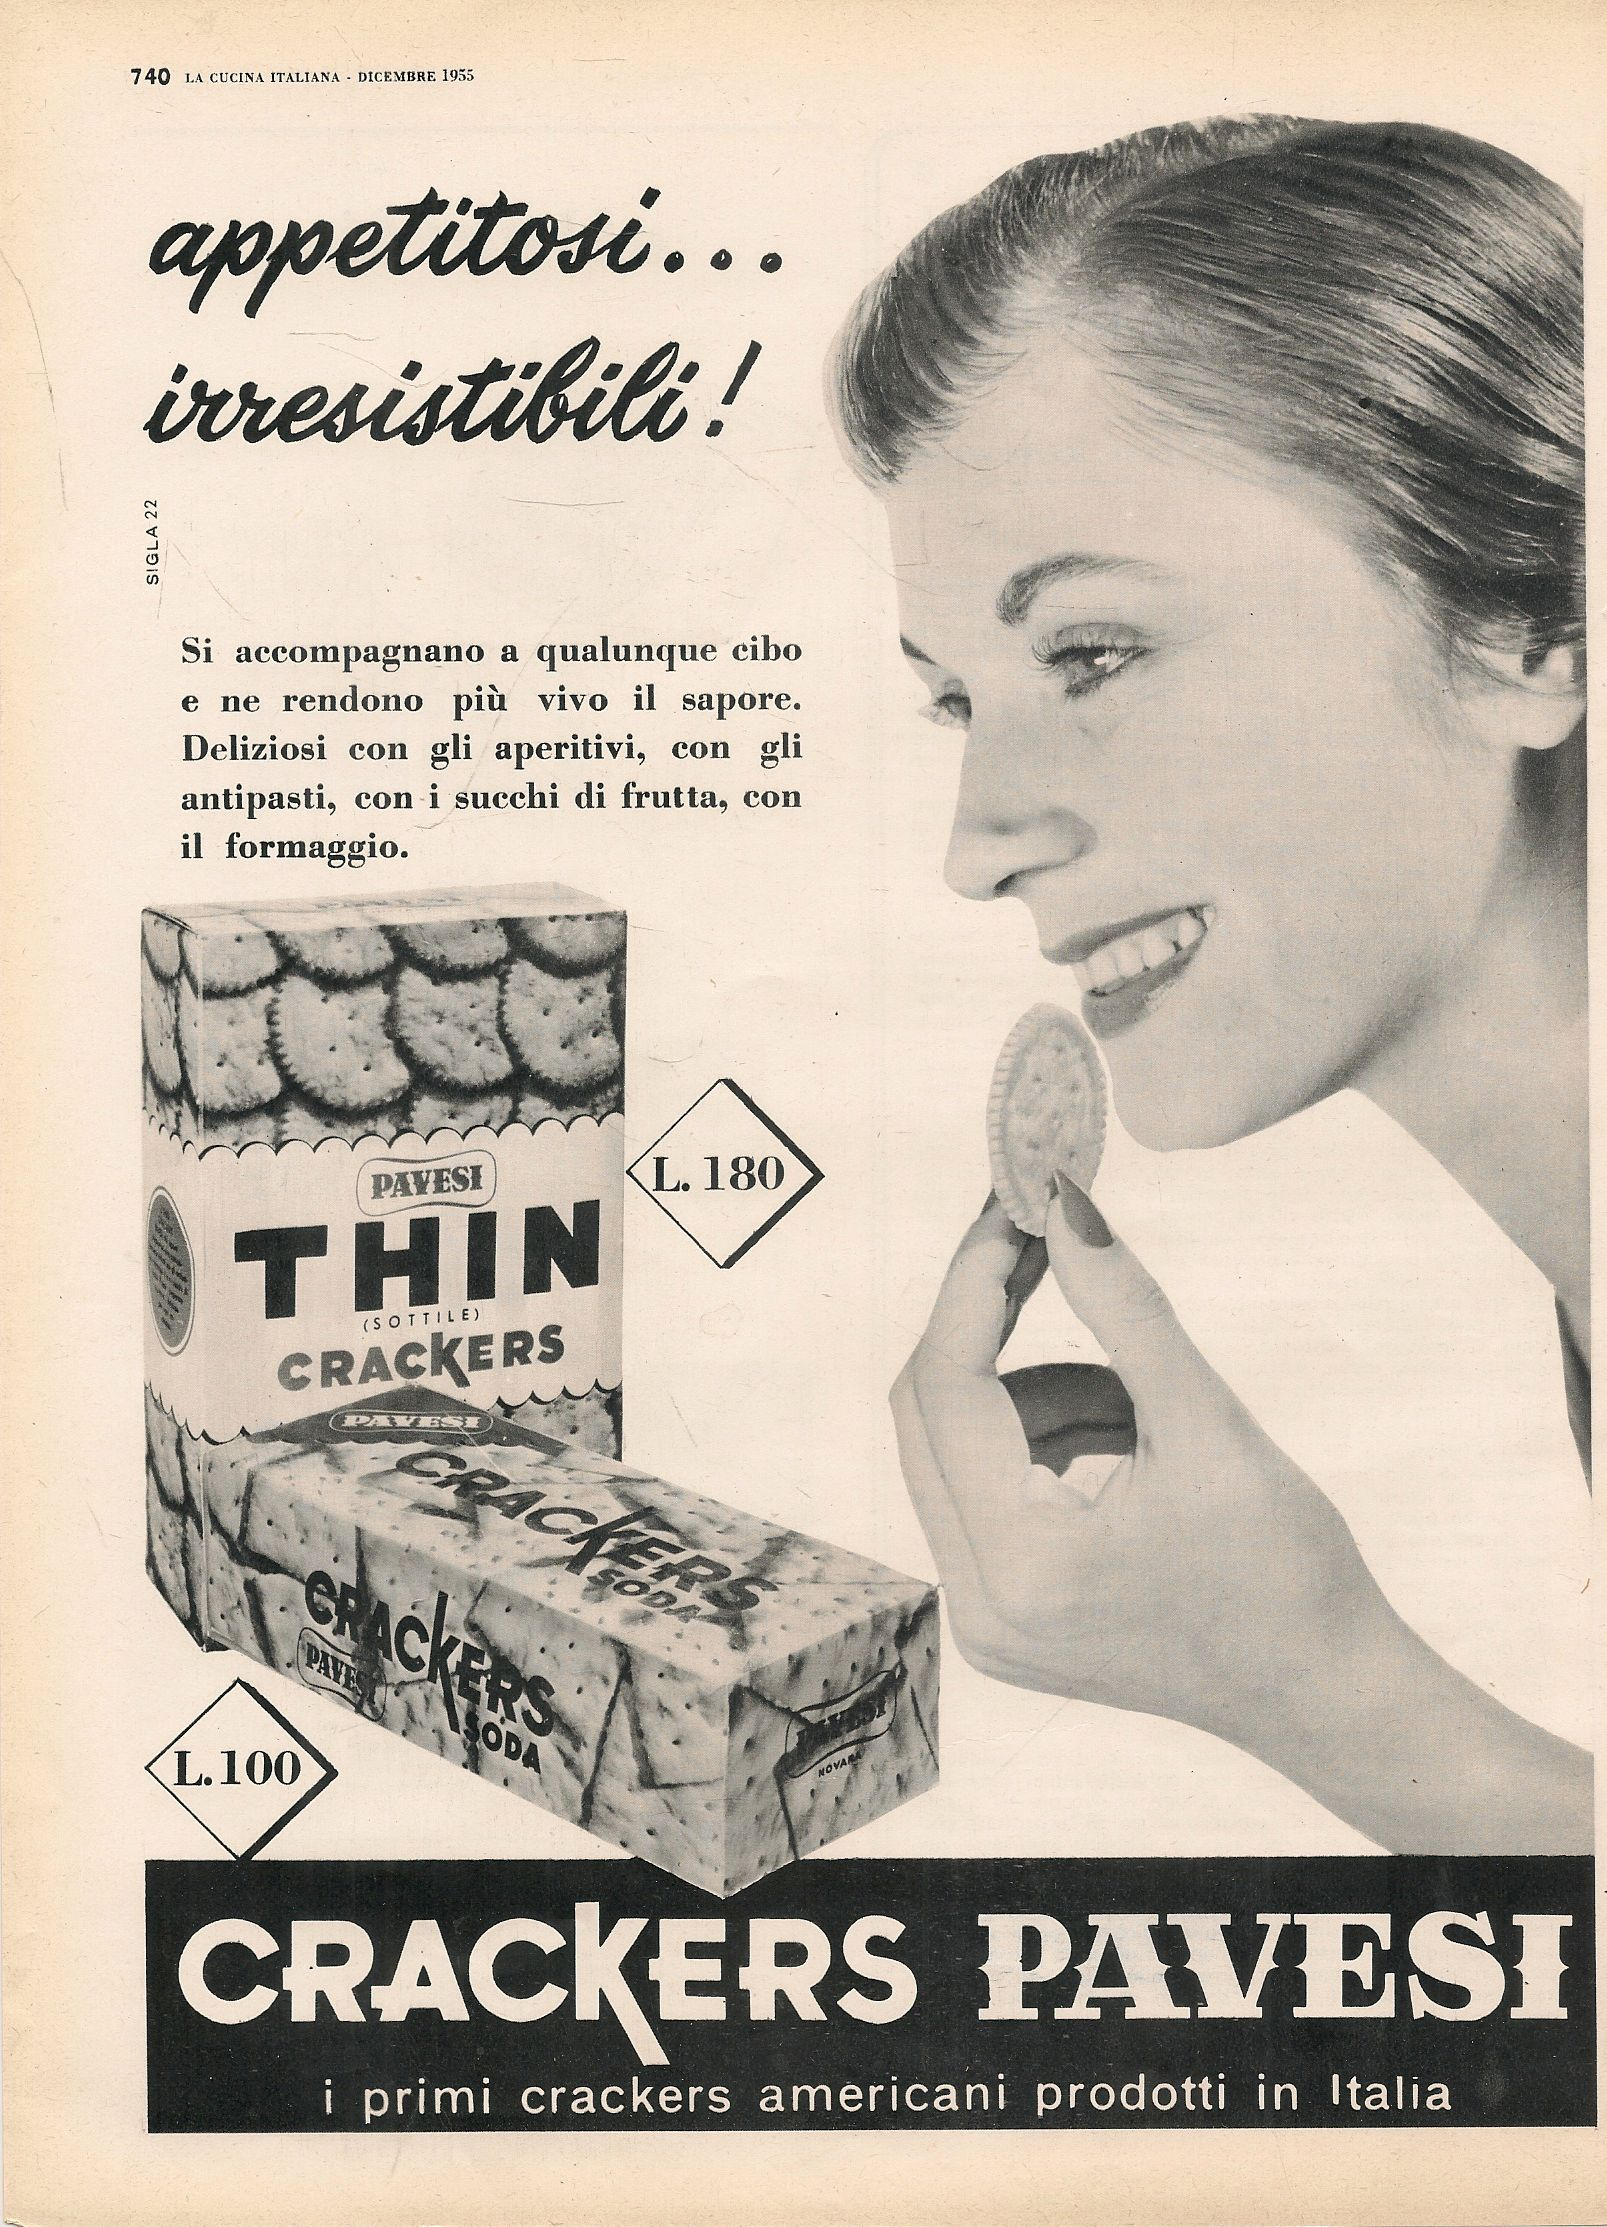 CRACKERS PAVESI. APPETITOSI IRRESISTIBILI - ADVERTISING